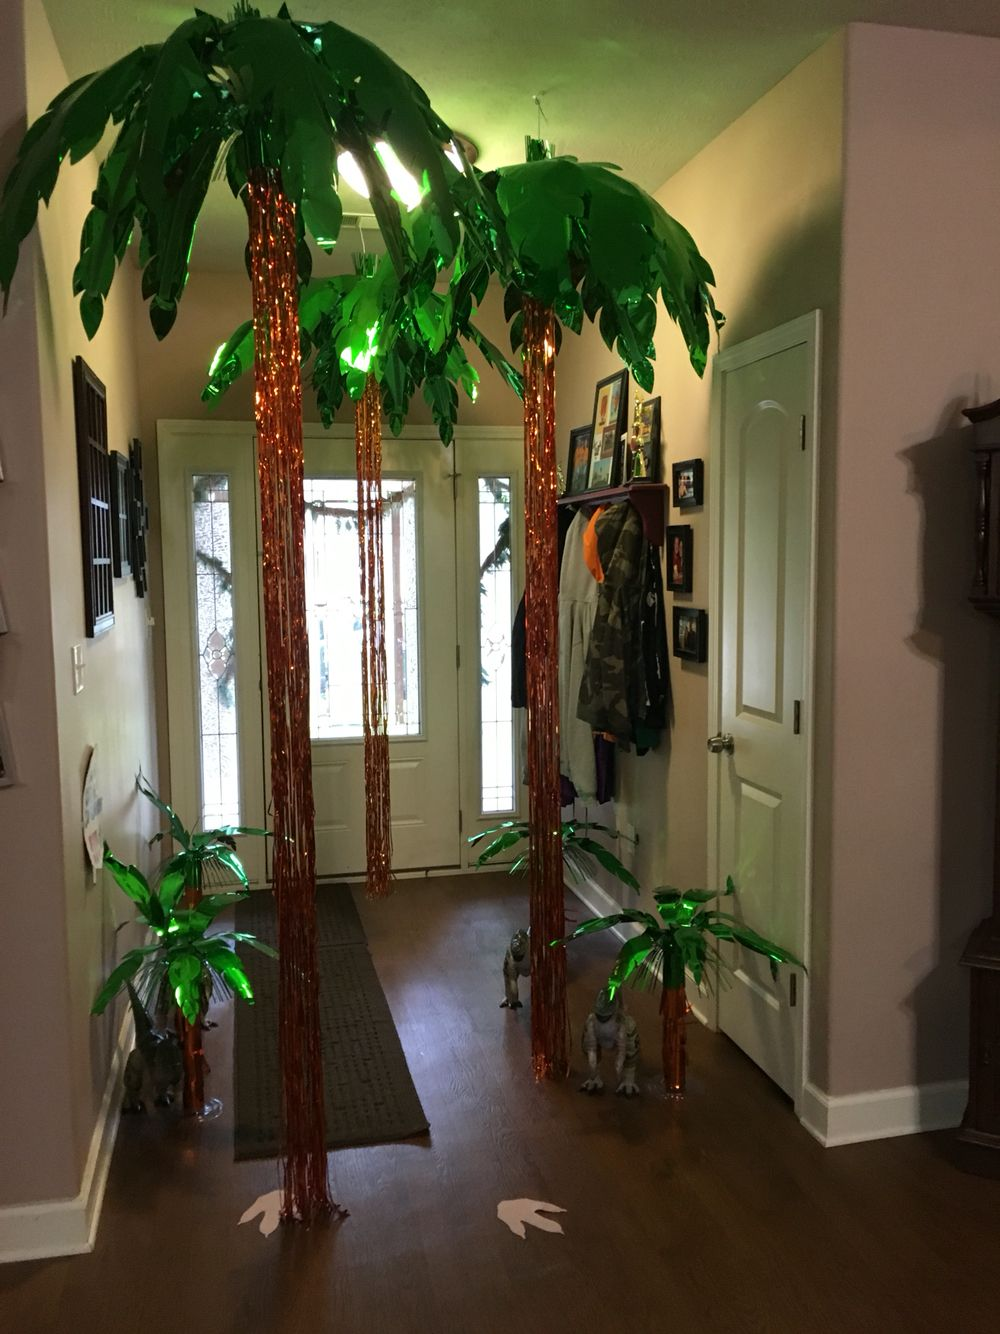 Dino Party Jurassic World Party Decorations Craft Paper Green